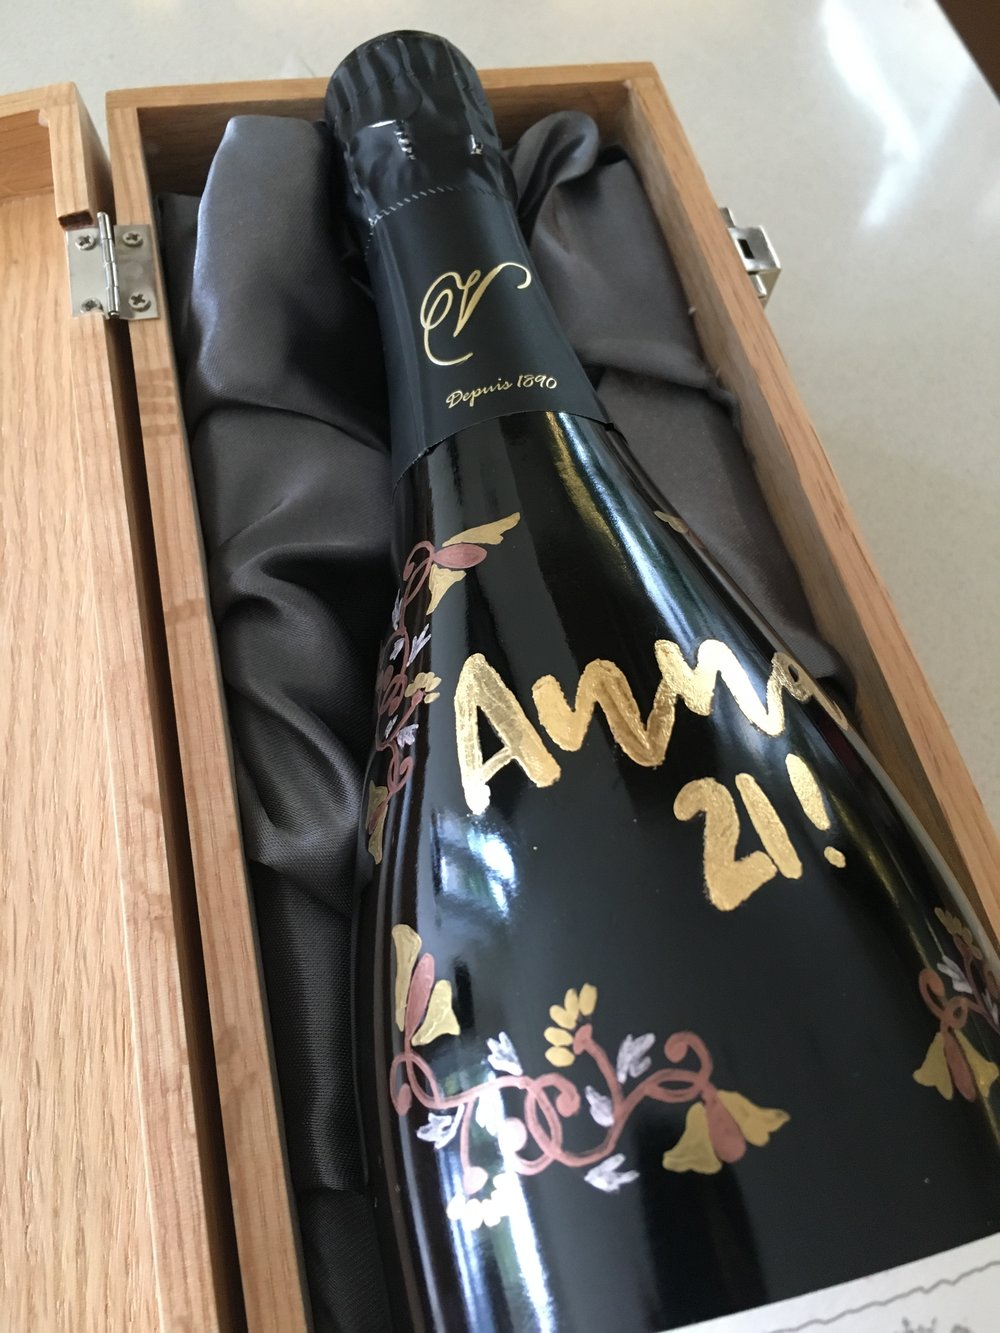 21st Birthday Present - If you can supply the bottle, I can do the motif! Beautiful bottle for a big celebration. Also great as a wedding gift.